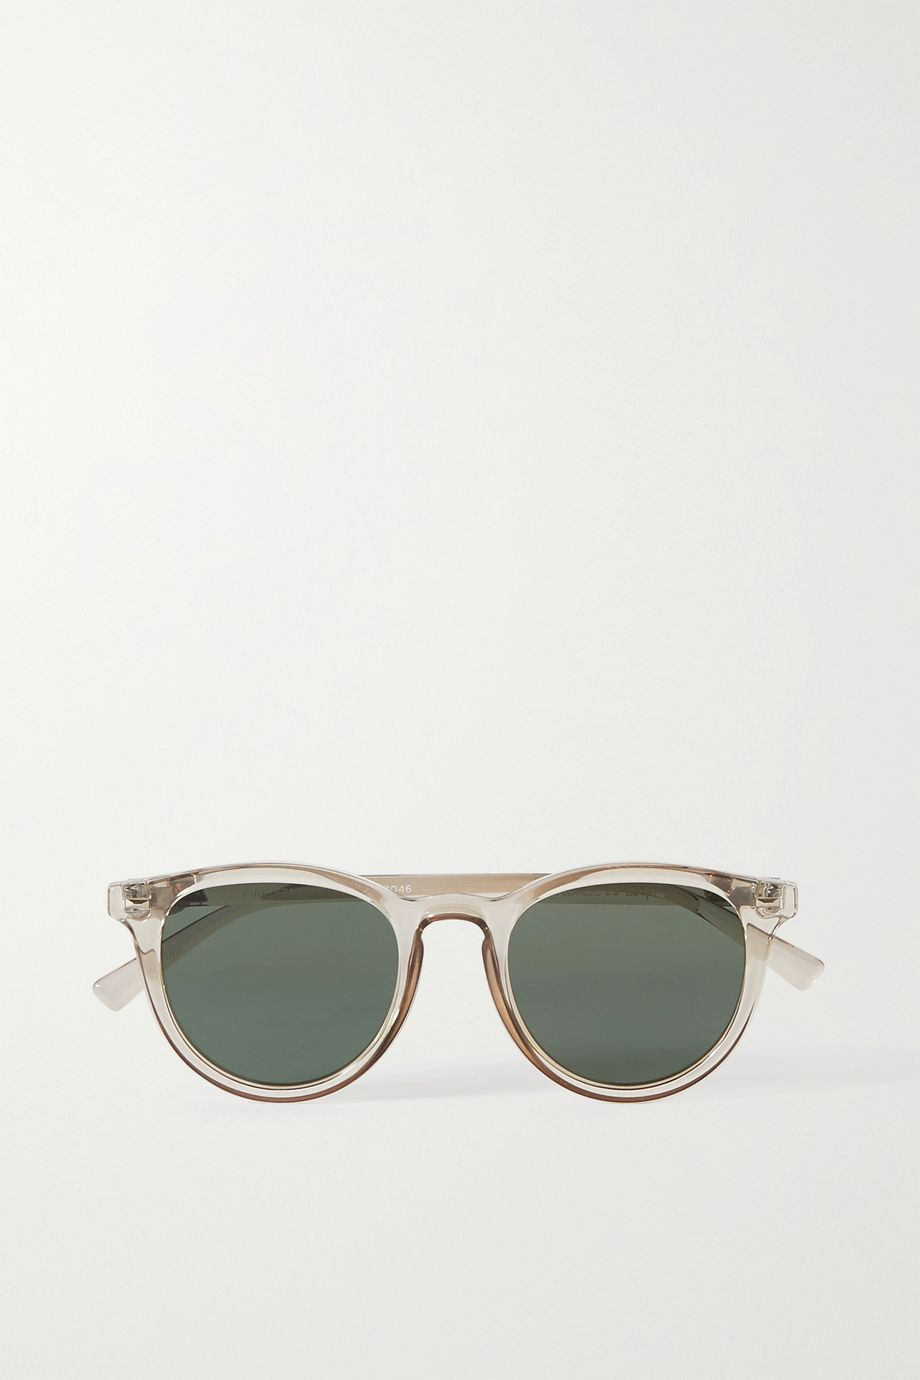 Le Specs Fire Starter round-frame acetate sunglasses